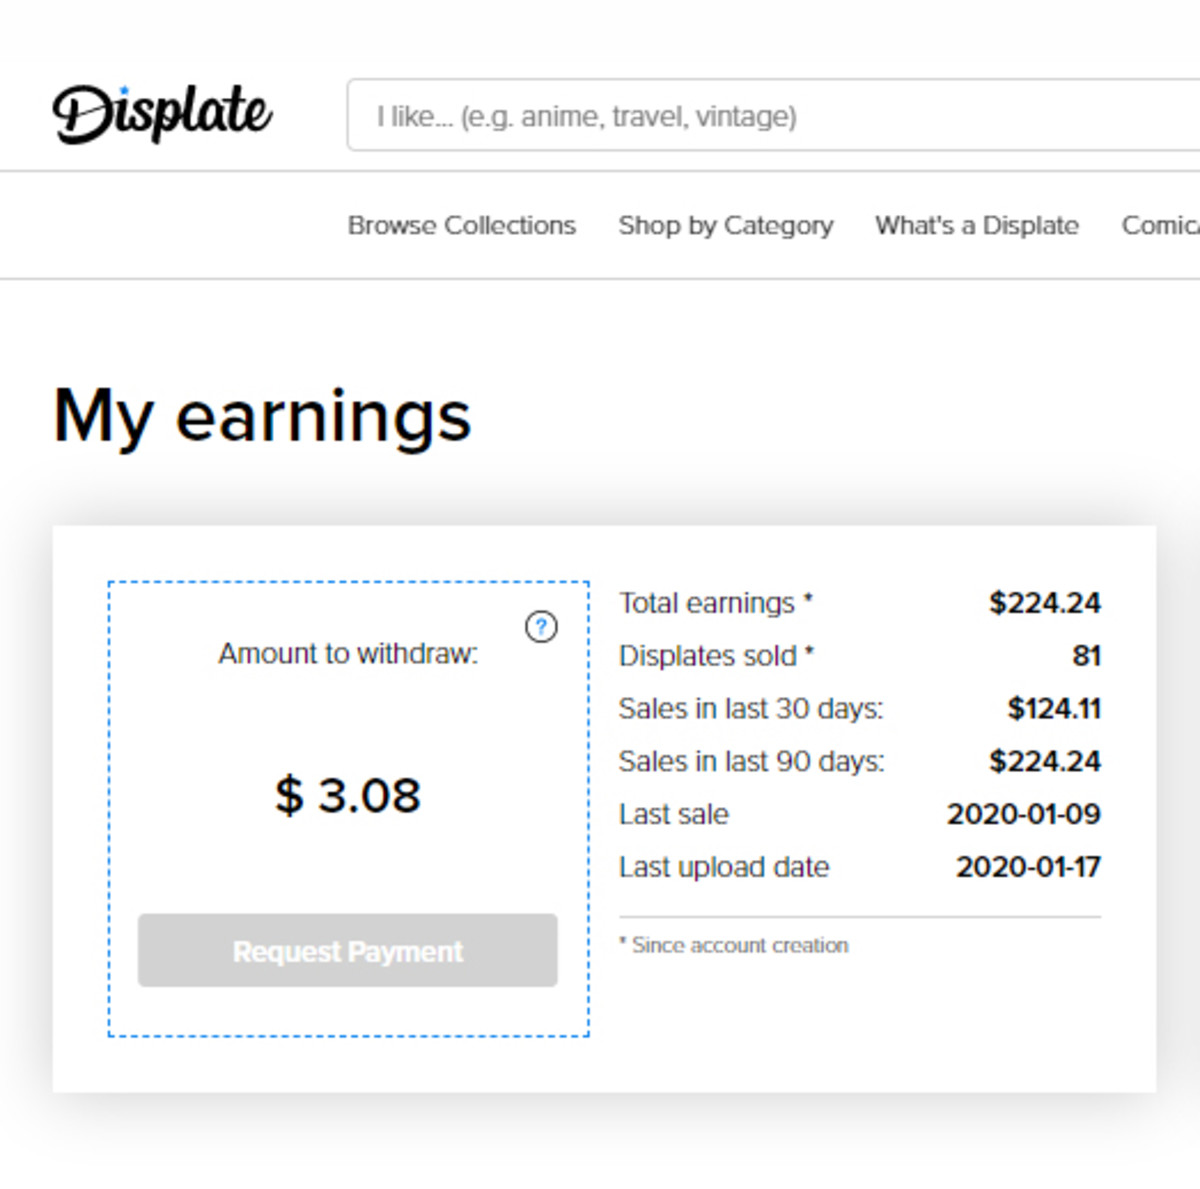 A summary of my earnings on Displate.